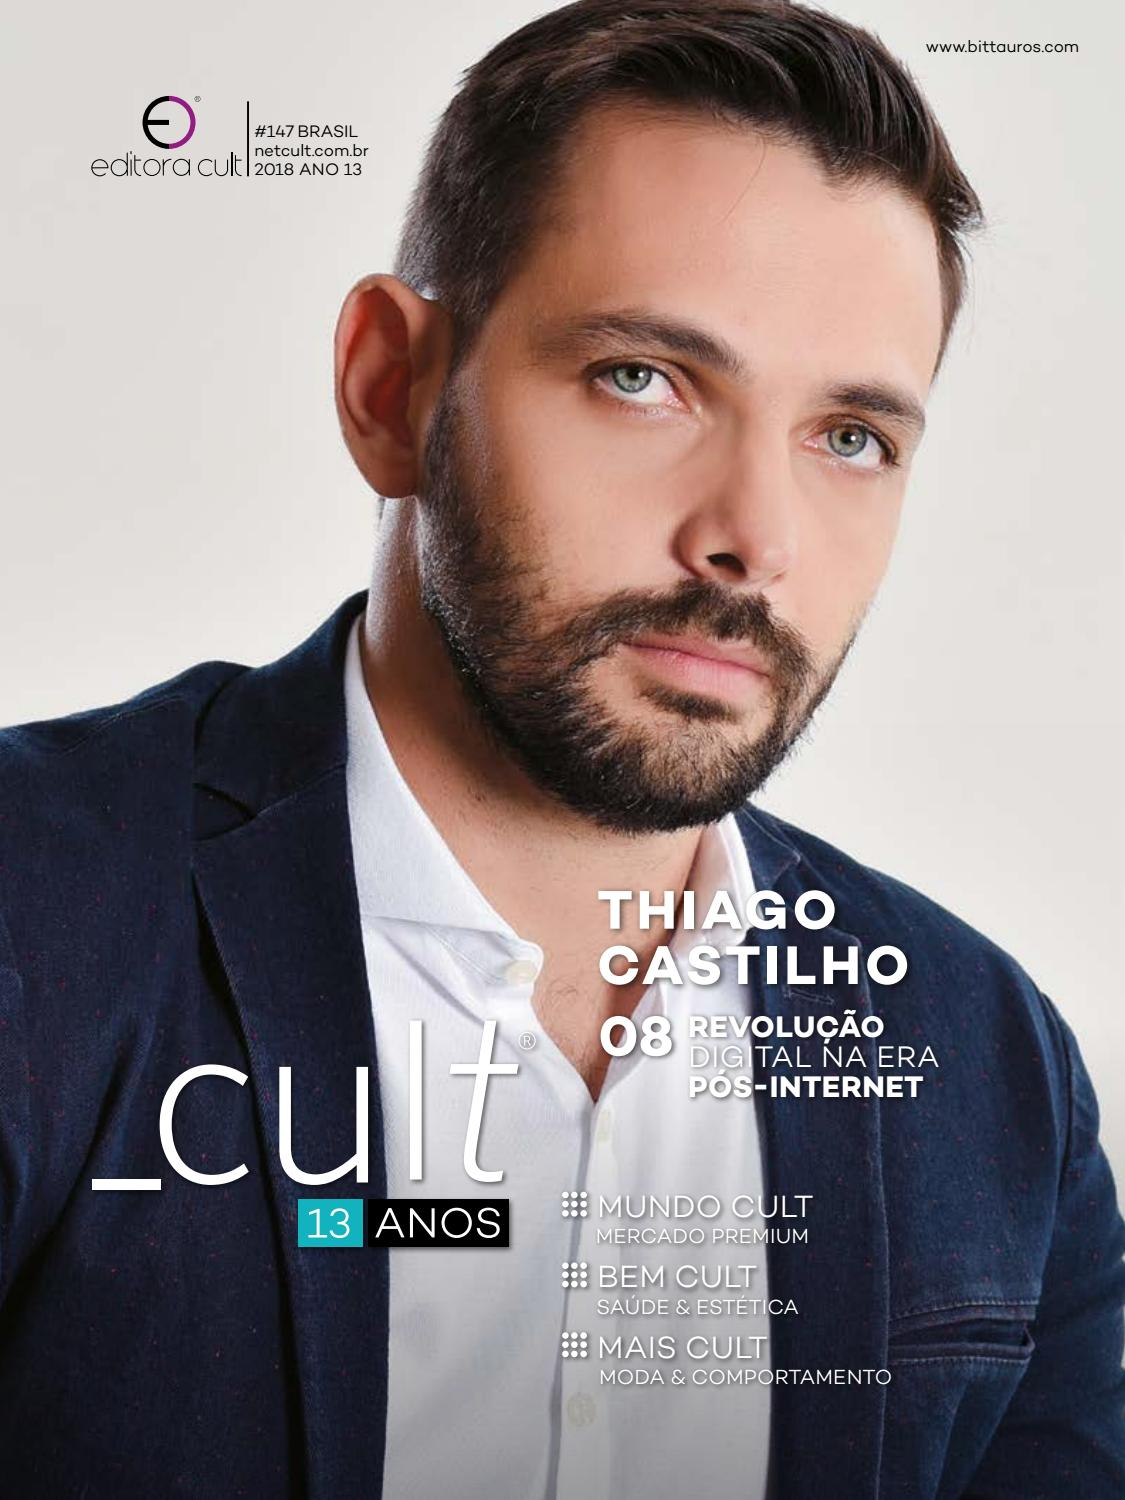 Cult 147  Thiago Castilho by Revista Cult - issuu 0ffb642dfc